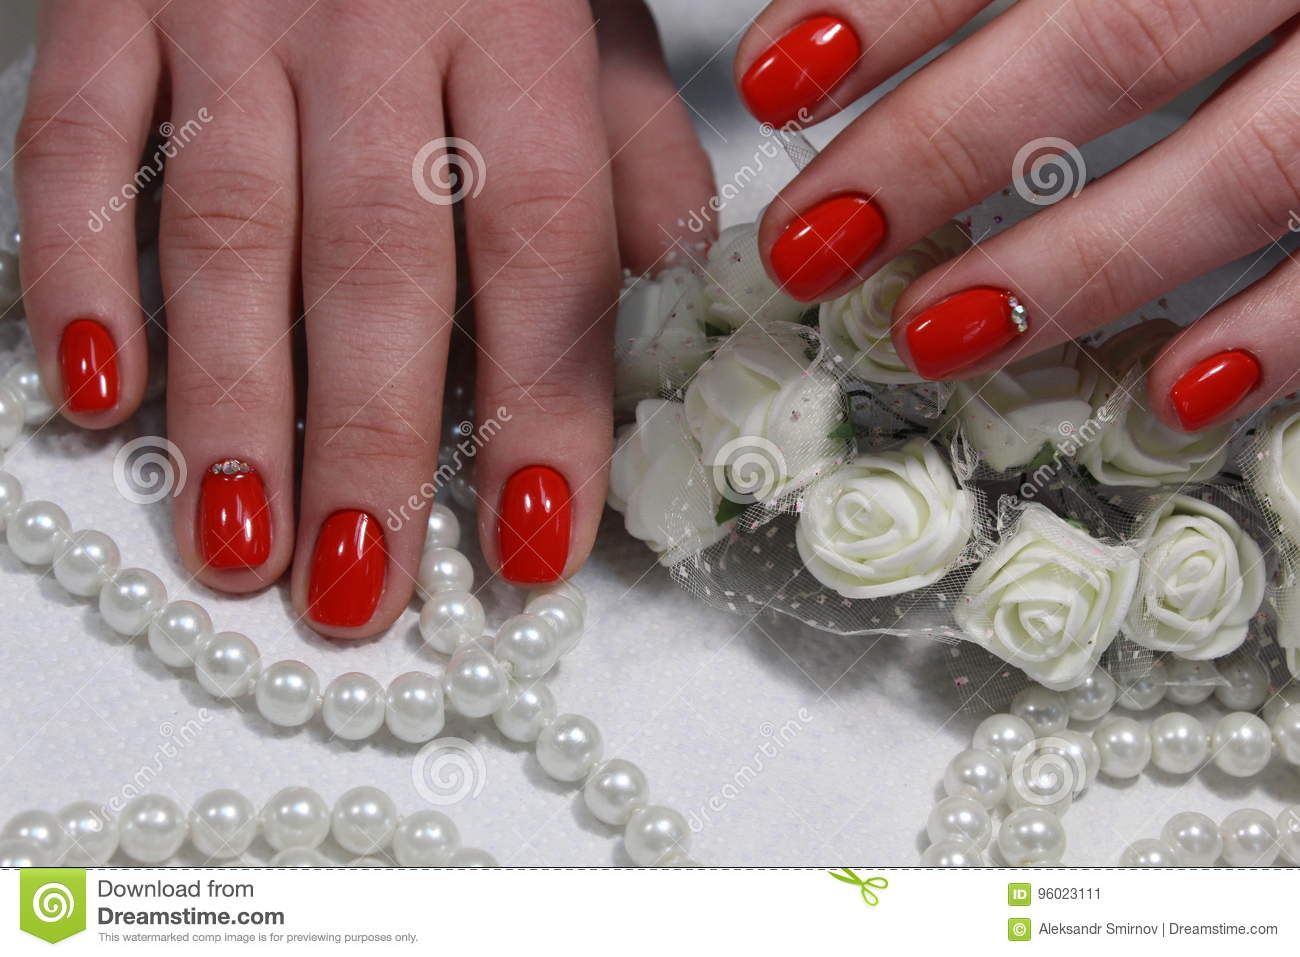 Nail Design With White Flower And Beads Stock Image Image Of Nails